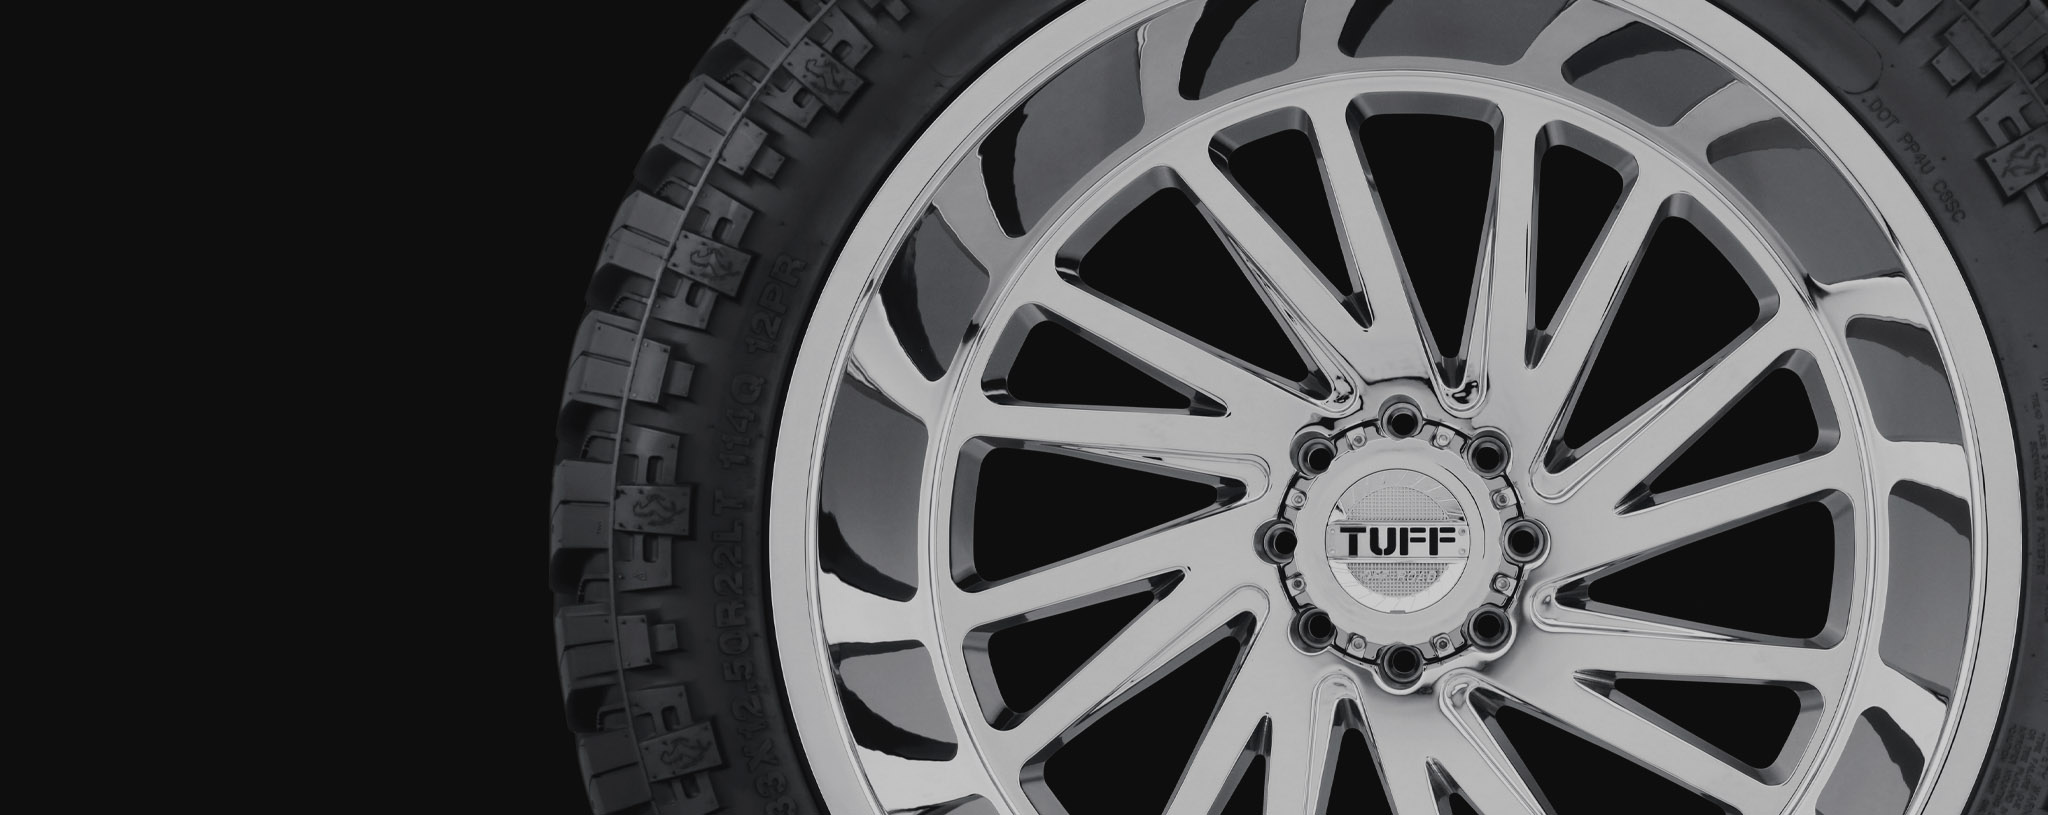 Off Road Wheels Truck Wheels And Rims By Tuff Wheels